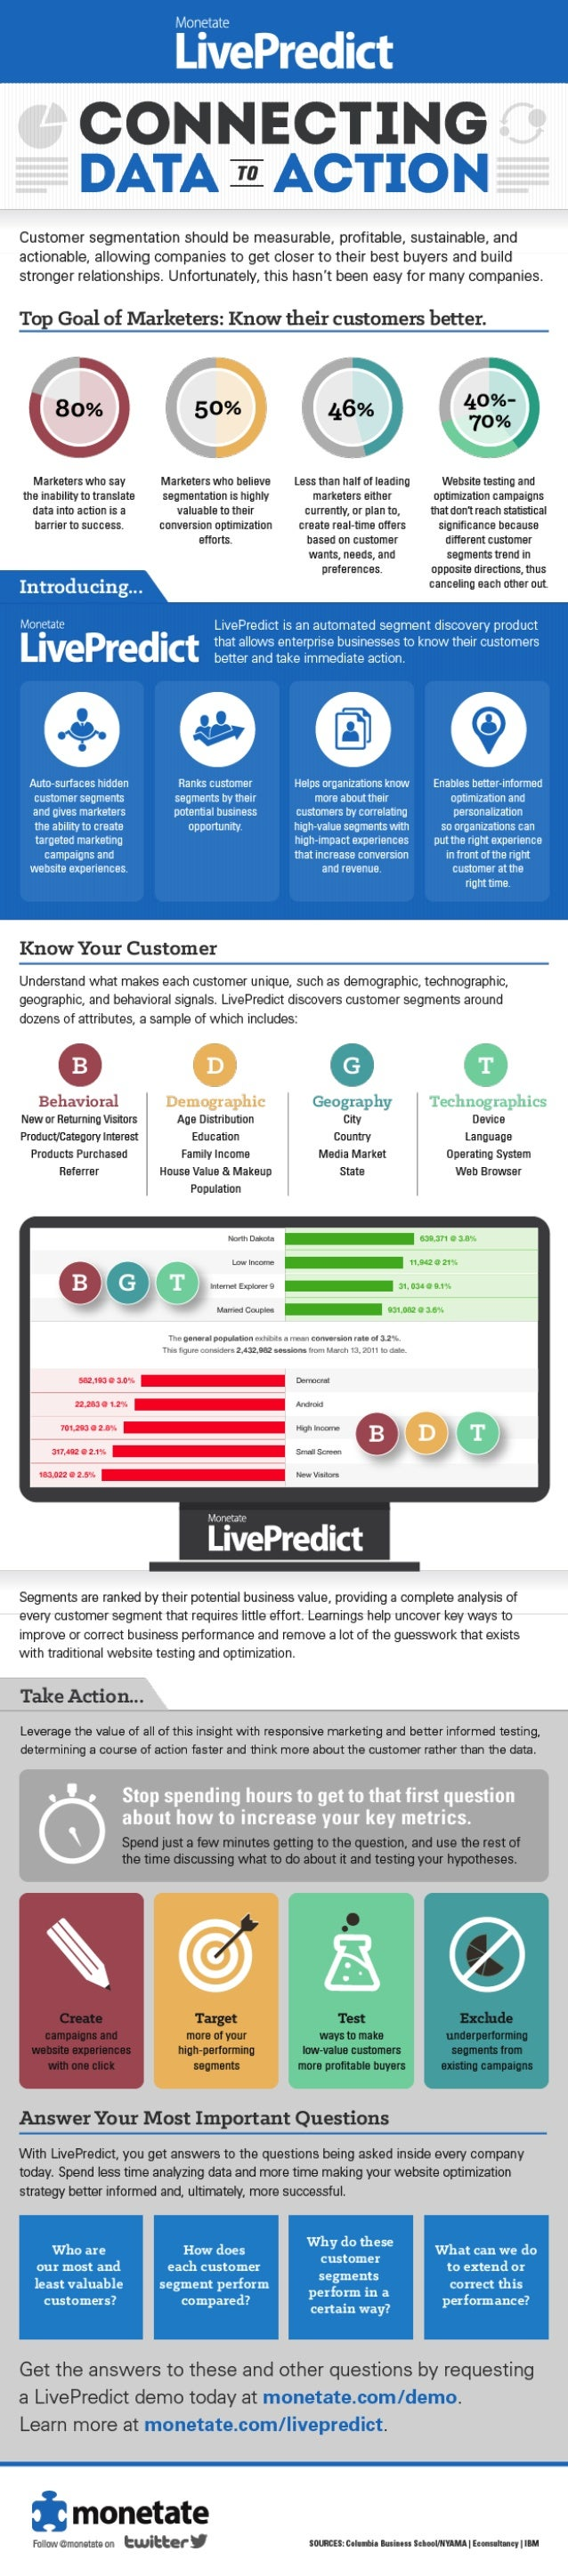 Introducing LivePredict: Connecting Data to Action